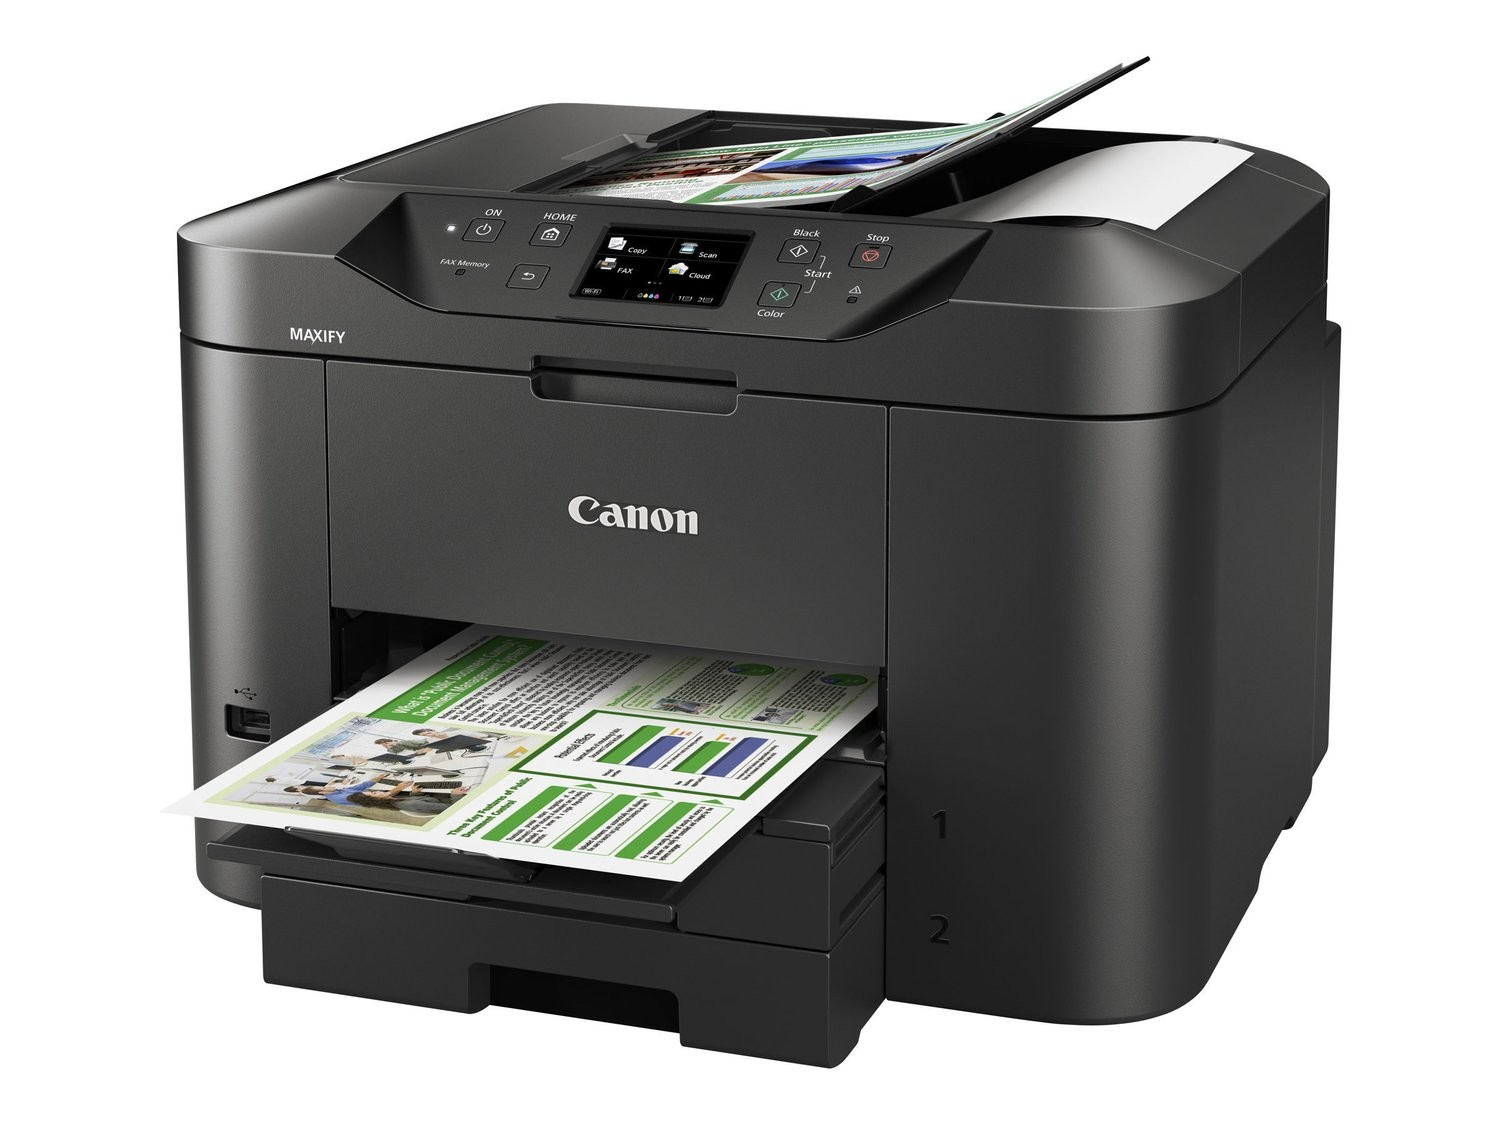 Canon Maxify MB2350 Print/Scan/Copy/Fax